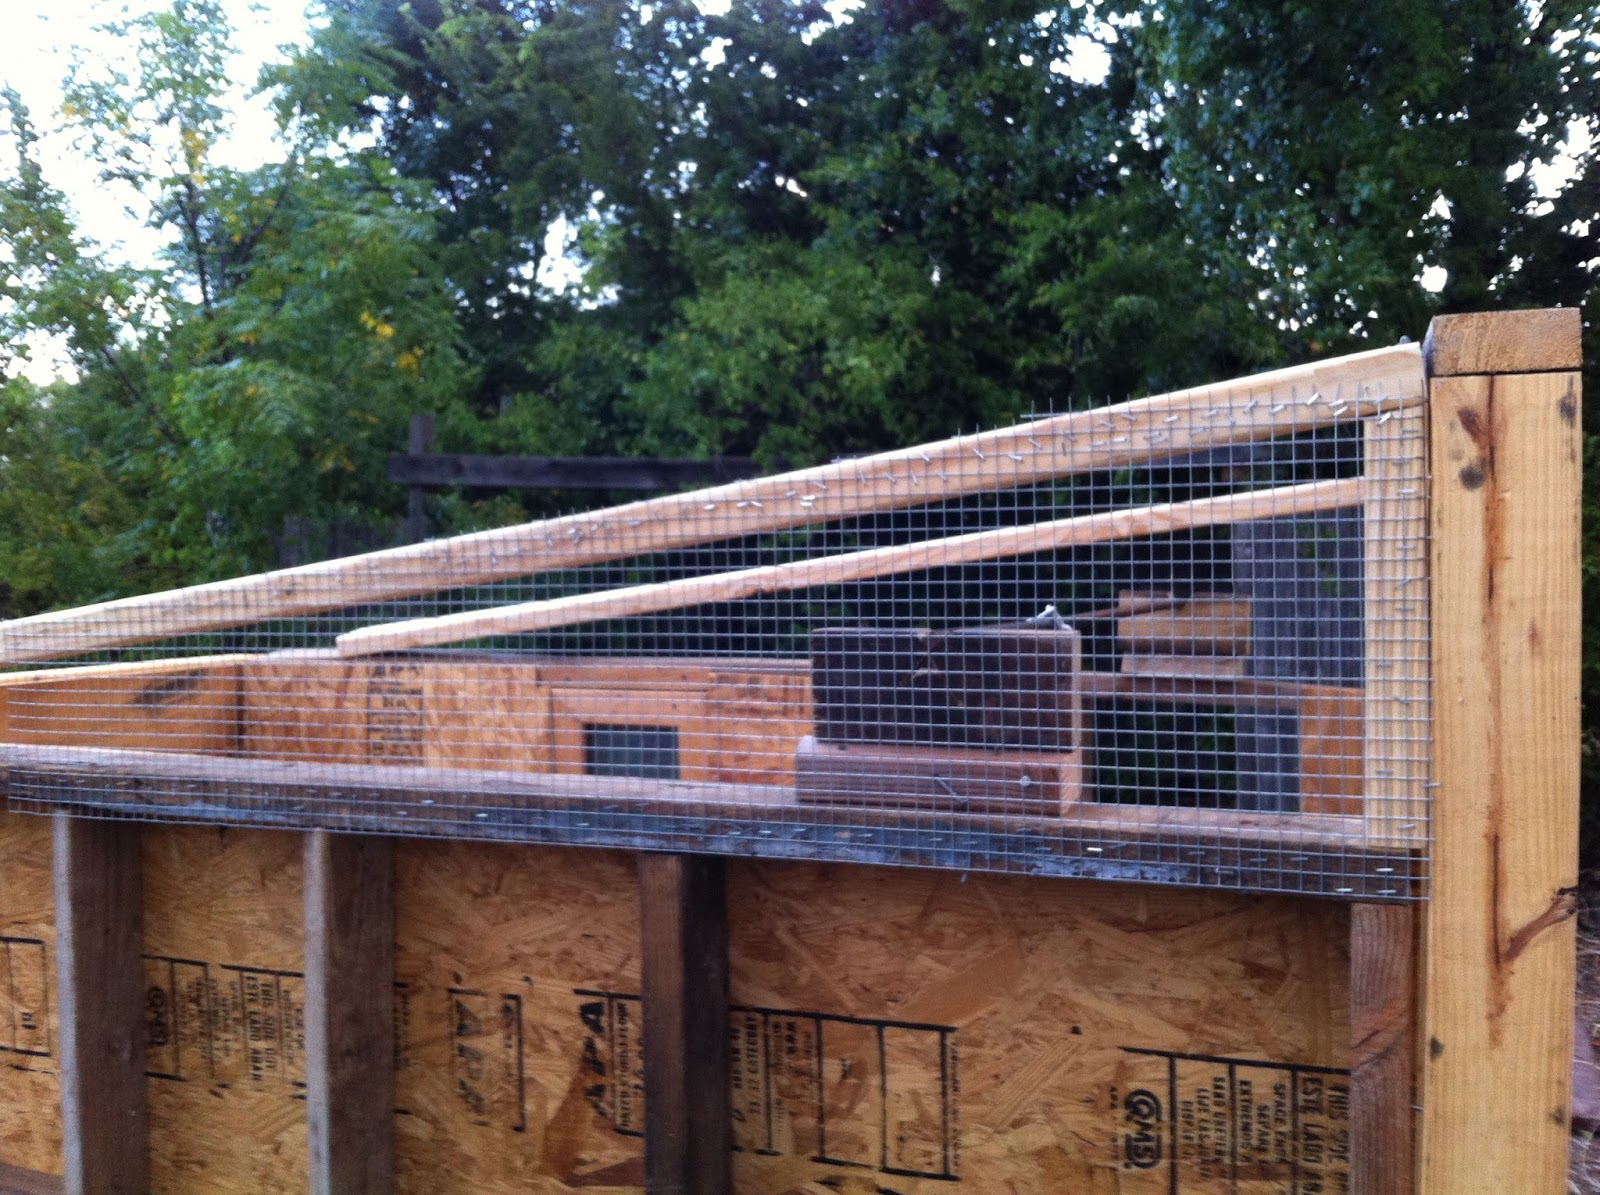 Ventilation For Chicken Houses : Making home our cheap blueprint less diy chicken coop